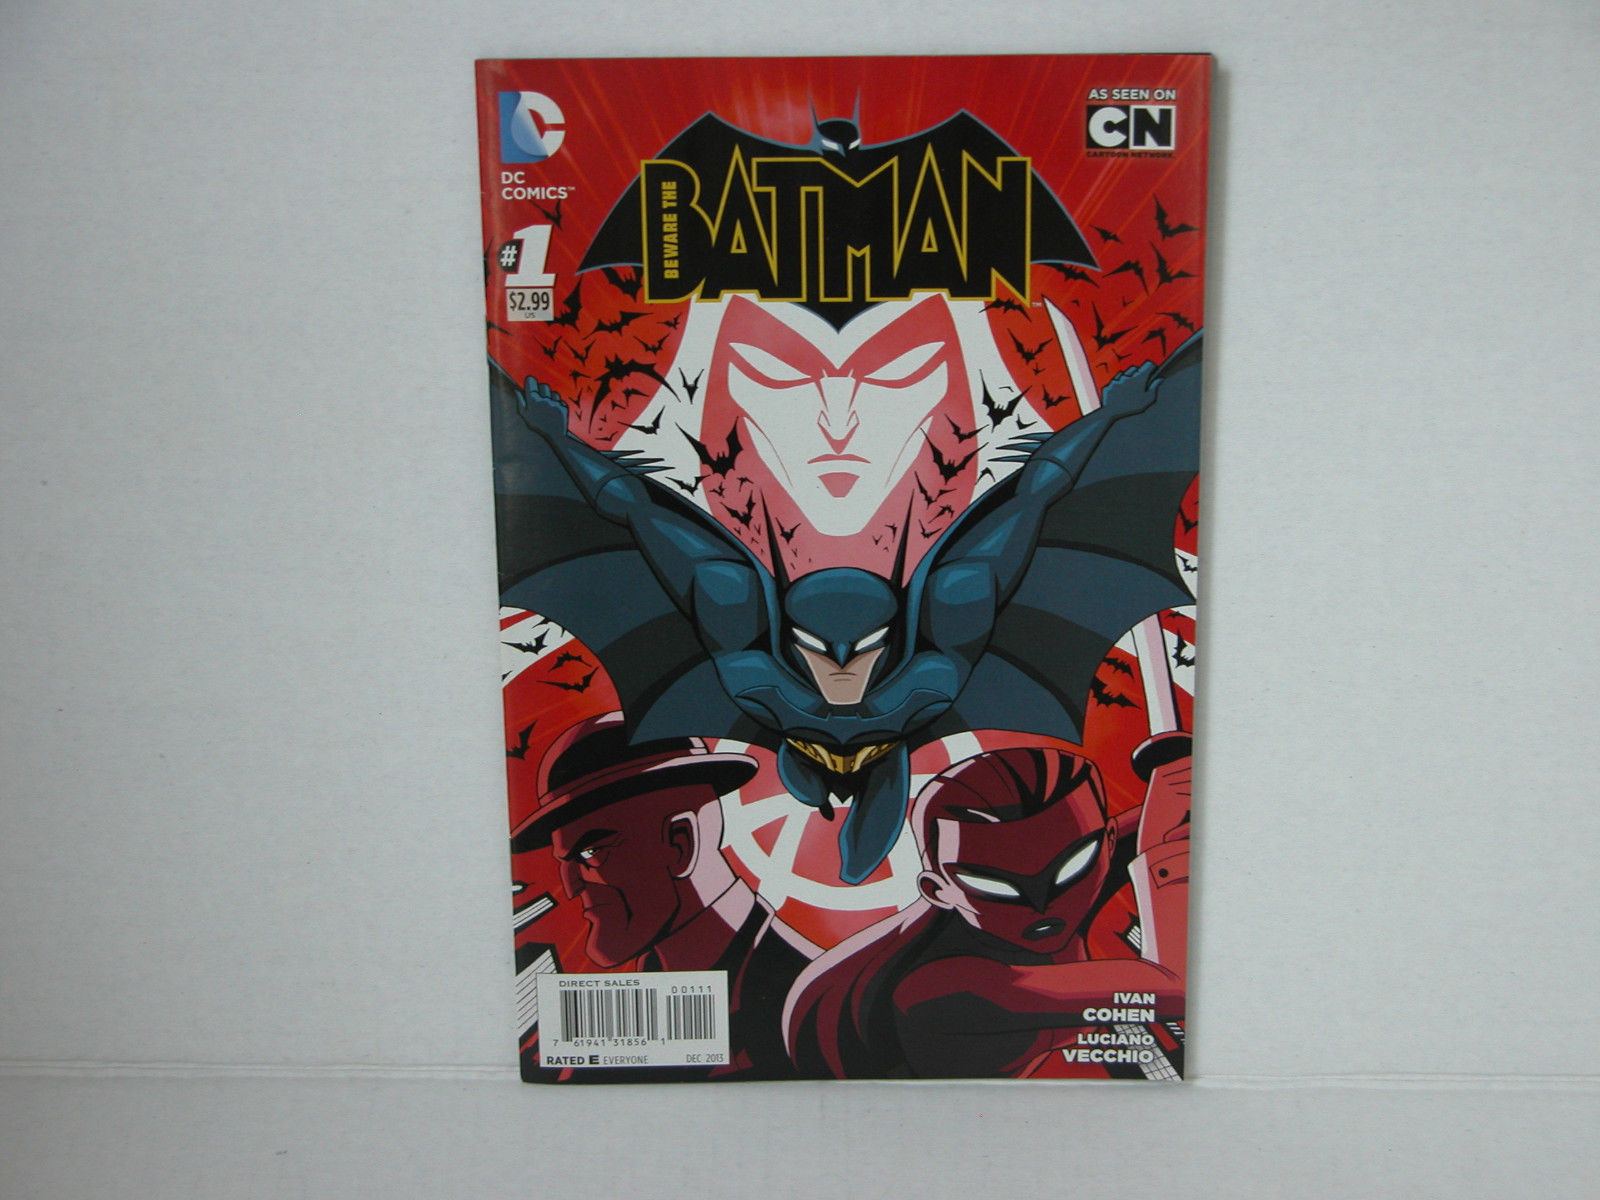 BATWOMAN #12 CURRENT SERIES + BEWARE THE BATMAN #1 - FREE SHIPPING